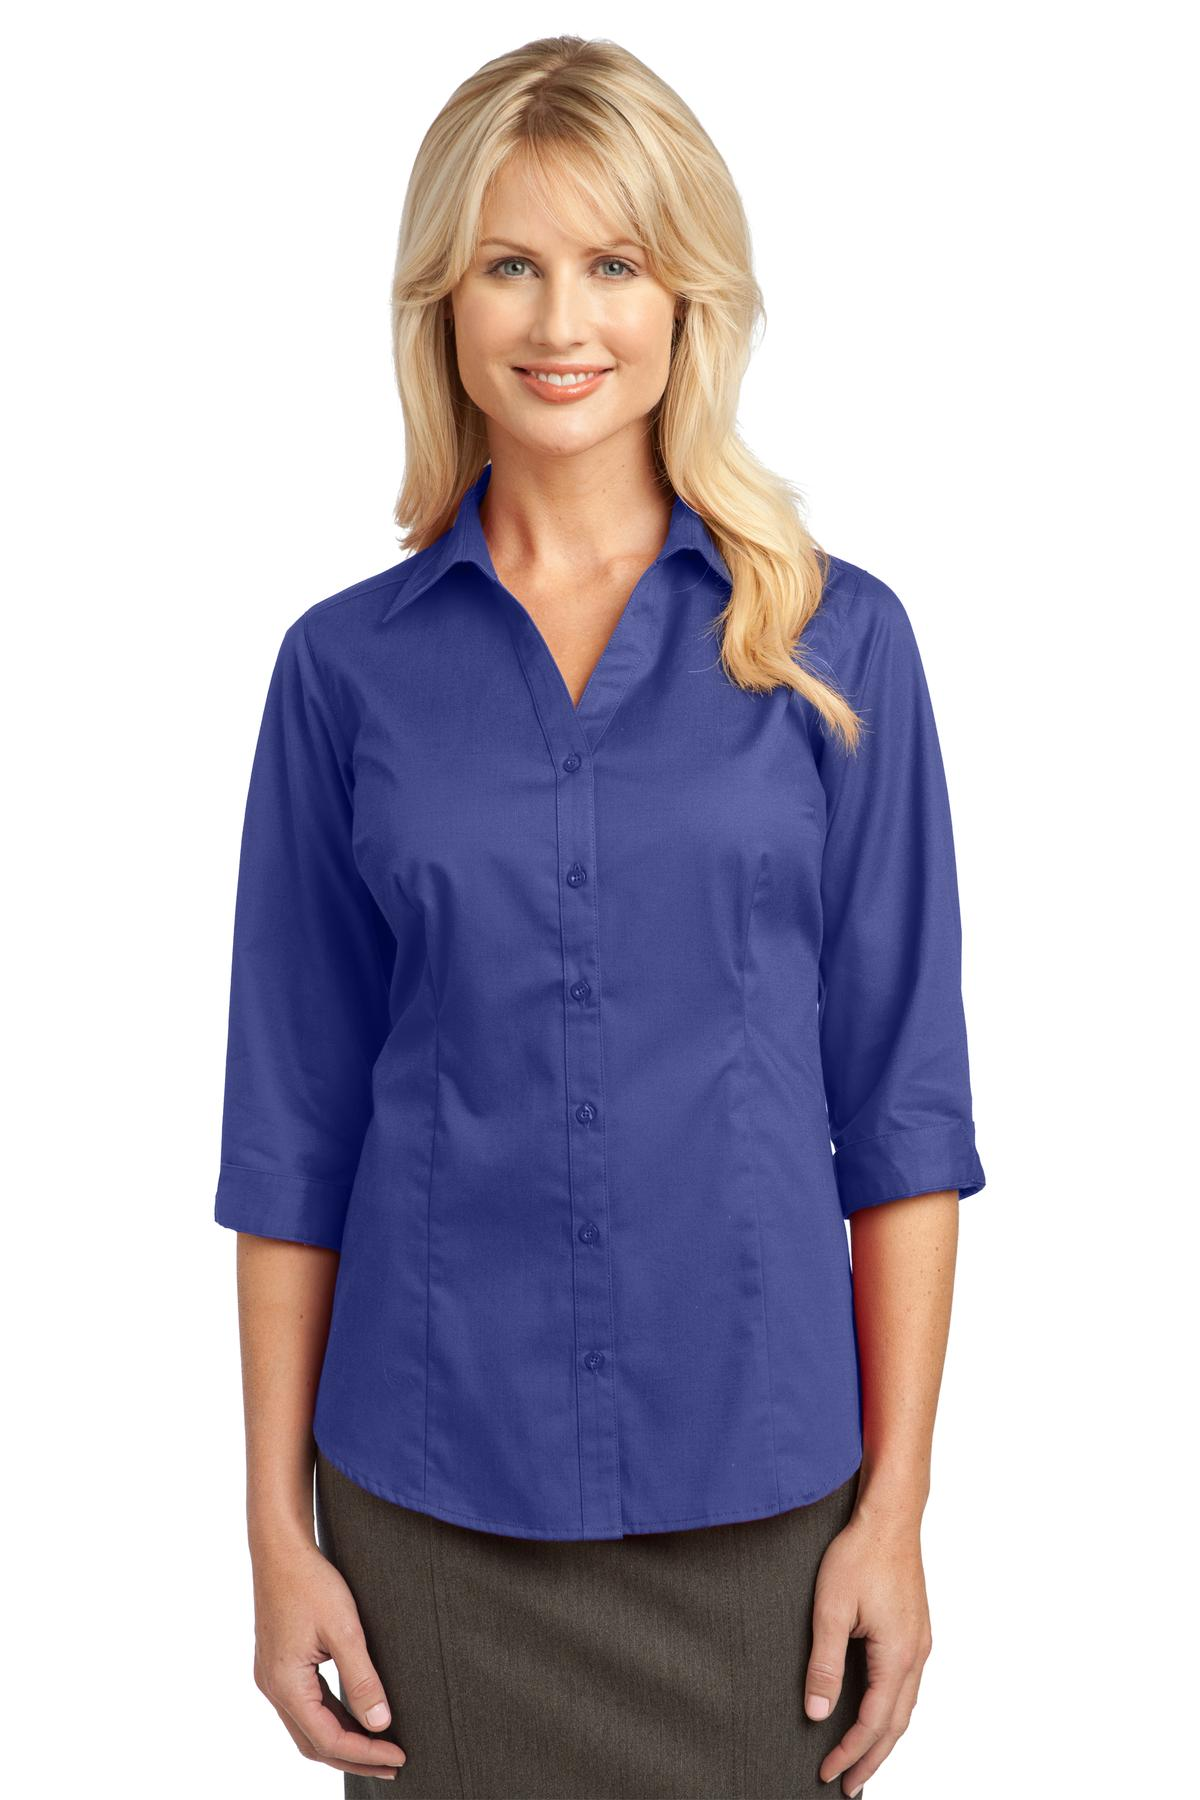 Coral Splash Port Authority Ladies Dry Zone® UV Micro-Mesh Polo.